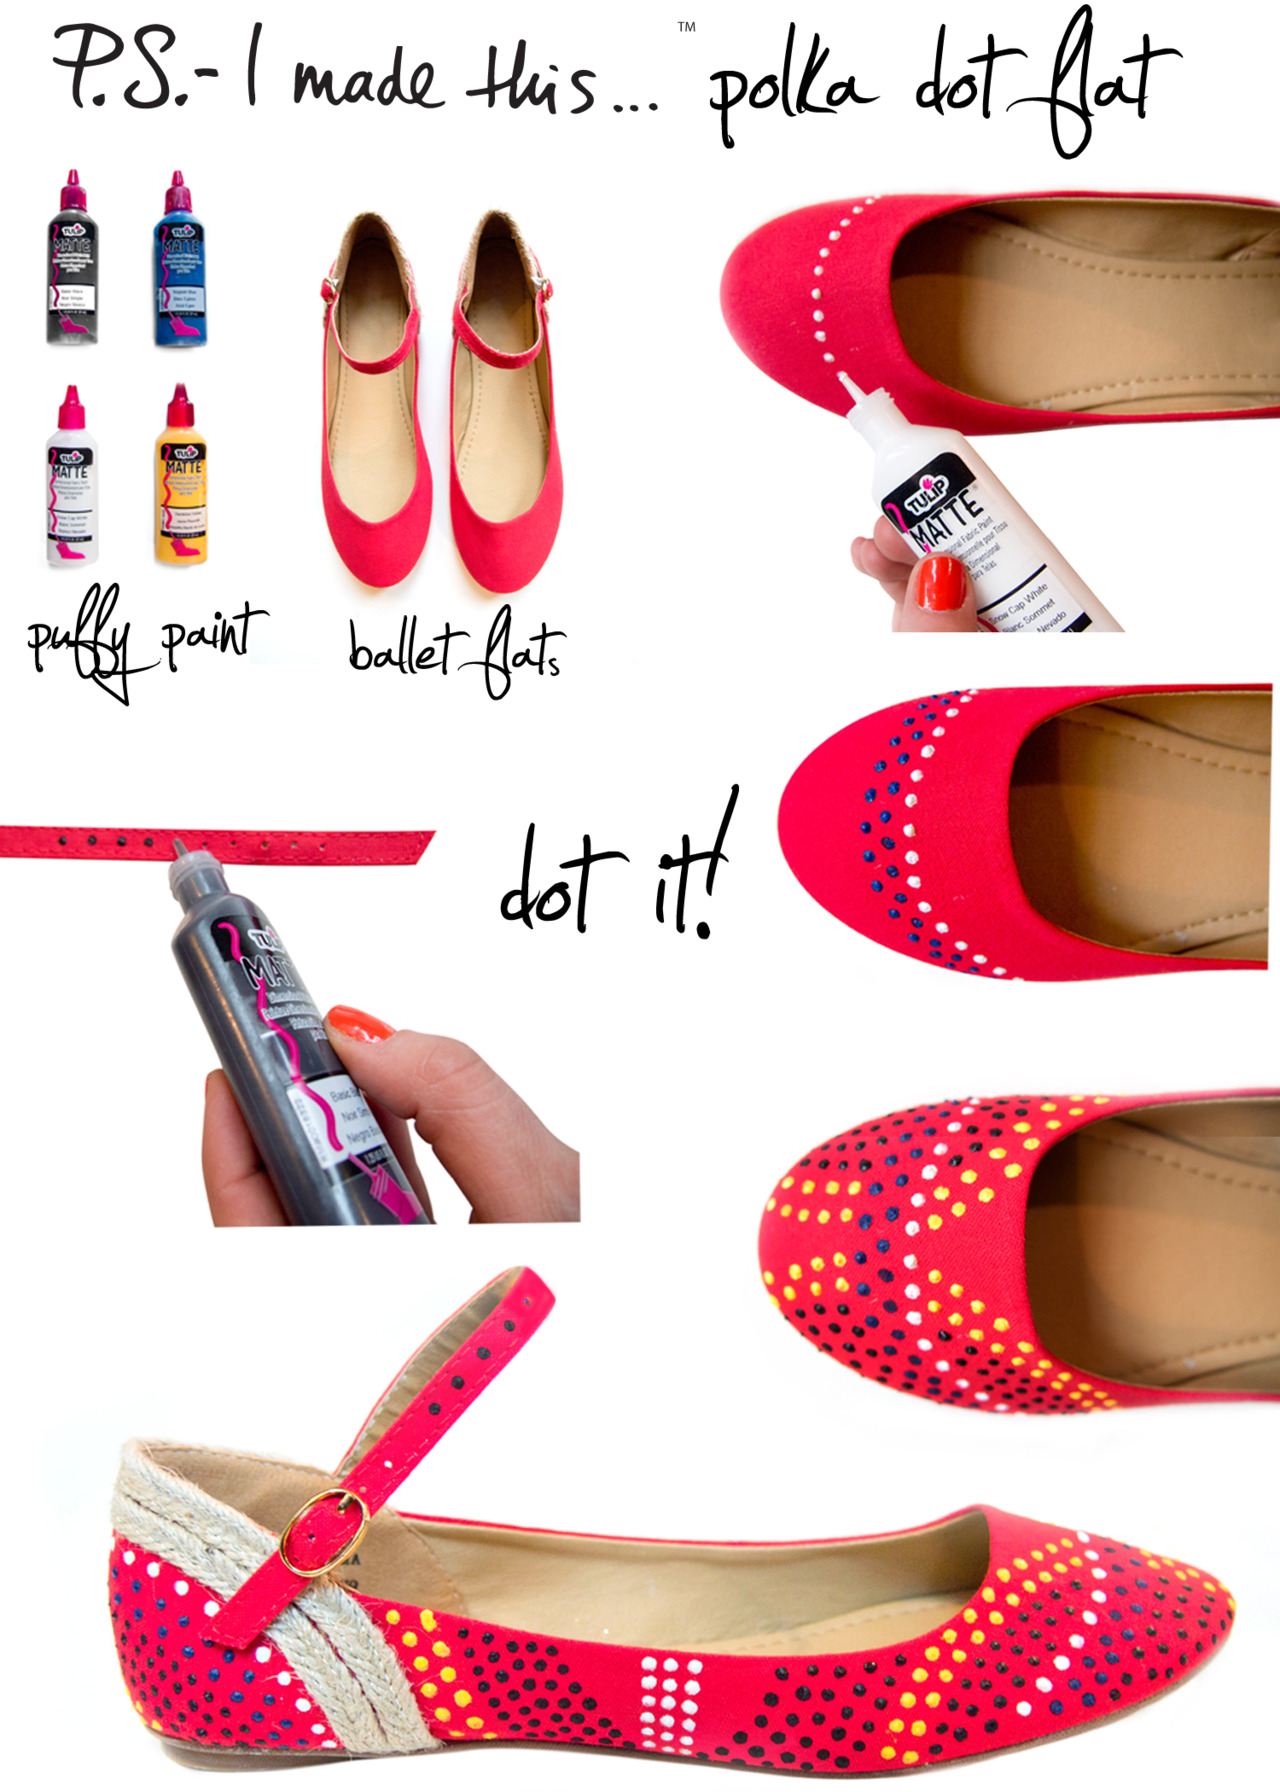 Dallas Wedding Planner, Dallas Event Planner, Dallas Party Planner, DIY Polka Dot Flats, P.S.- I made this...